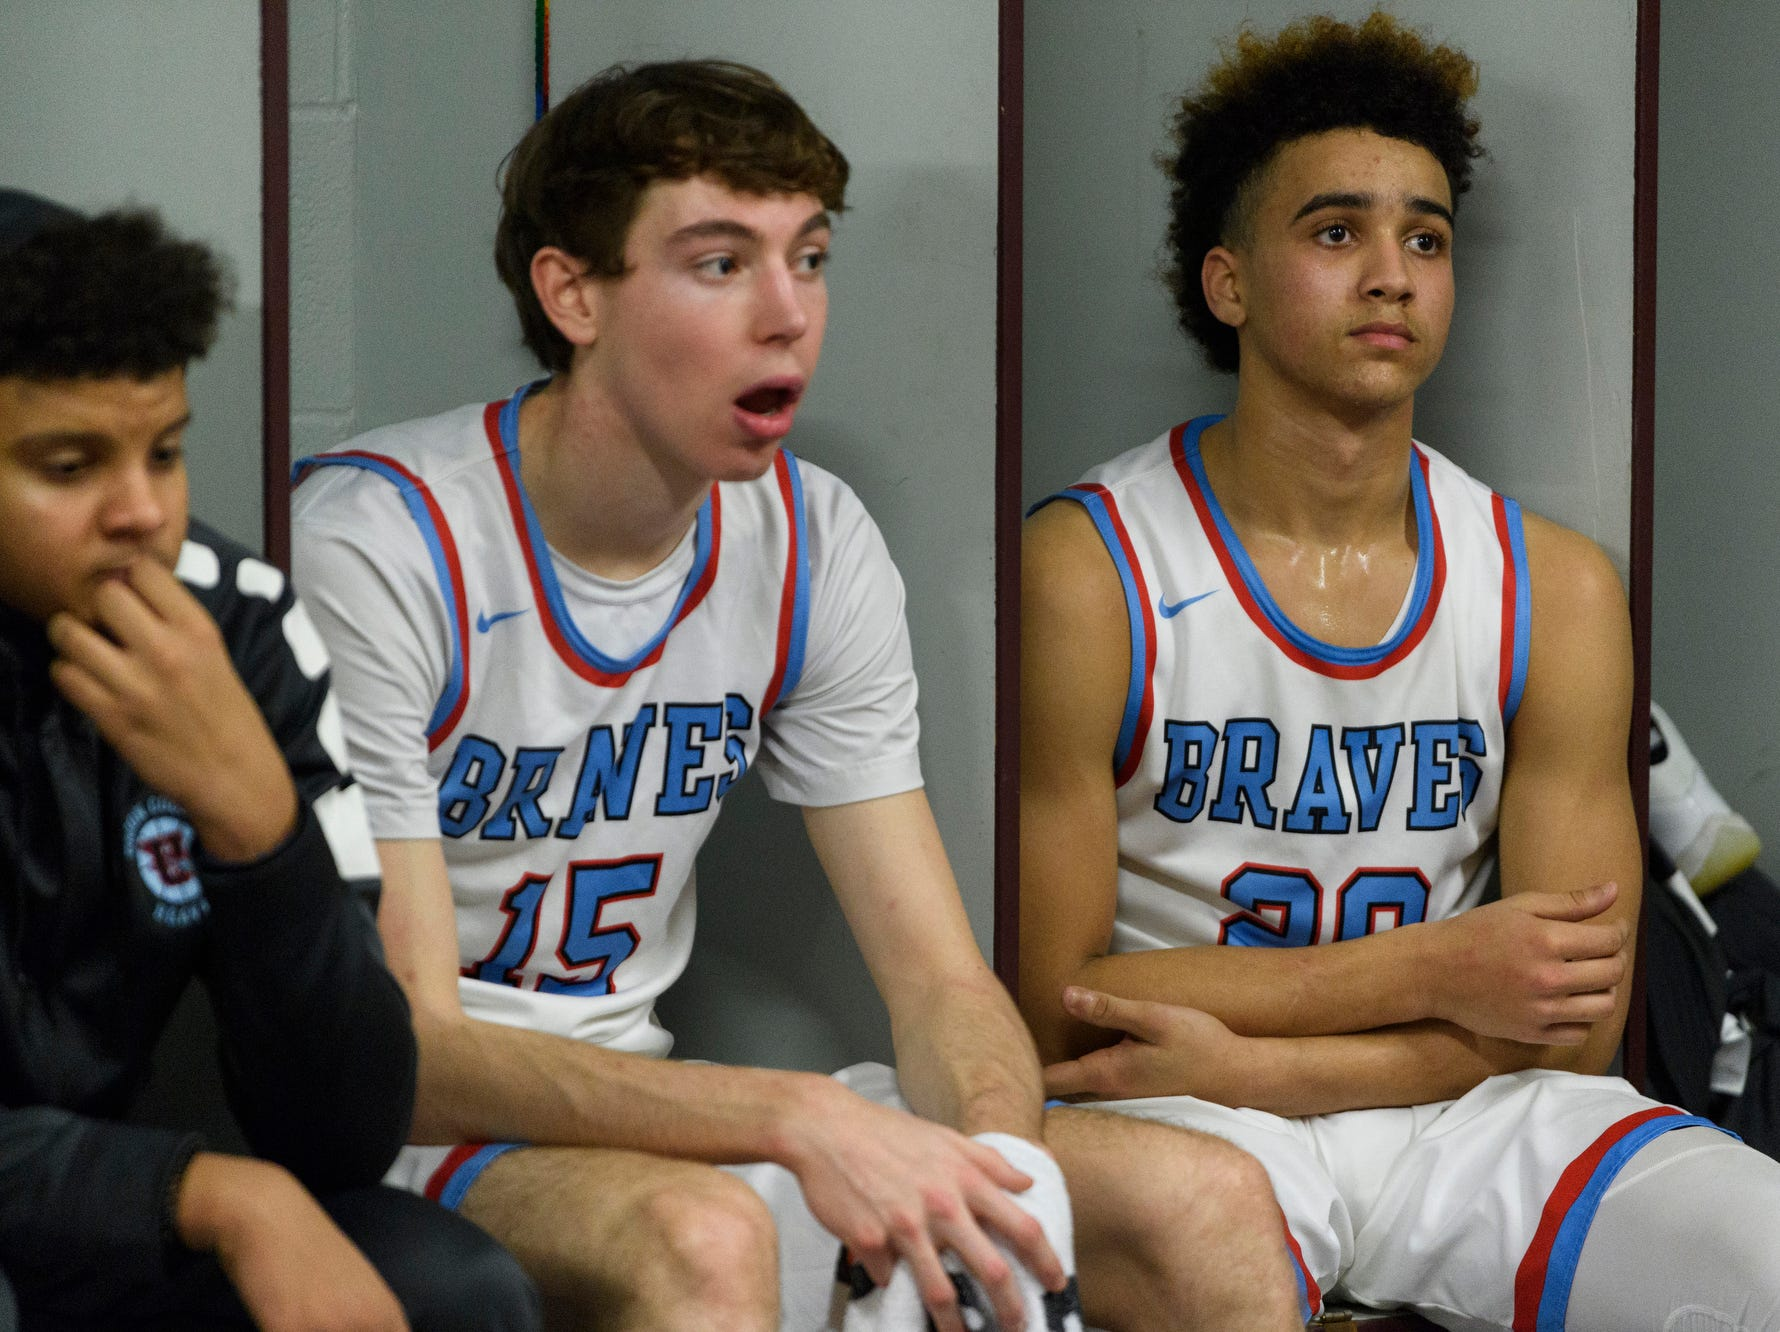 Union County's Elex Dunford (15) and Kale Gaither (20) listen to their coaches during halftime of the Boys Second Region tournament against the Caldwell County Tigers at Madisonville-North Hopkins High School in Madisonville, Ky., Monday, Feb. 25, 2019. The Tigers defeated the Braves 67-64.